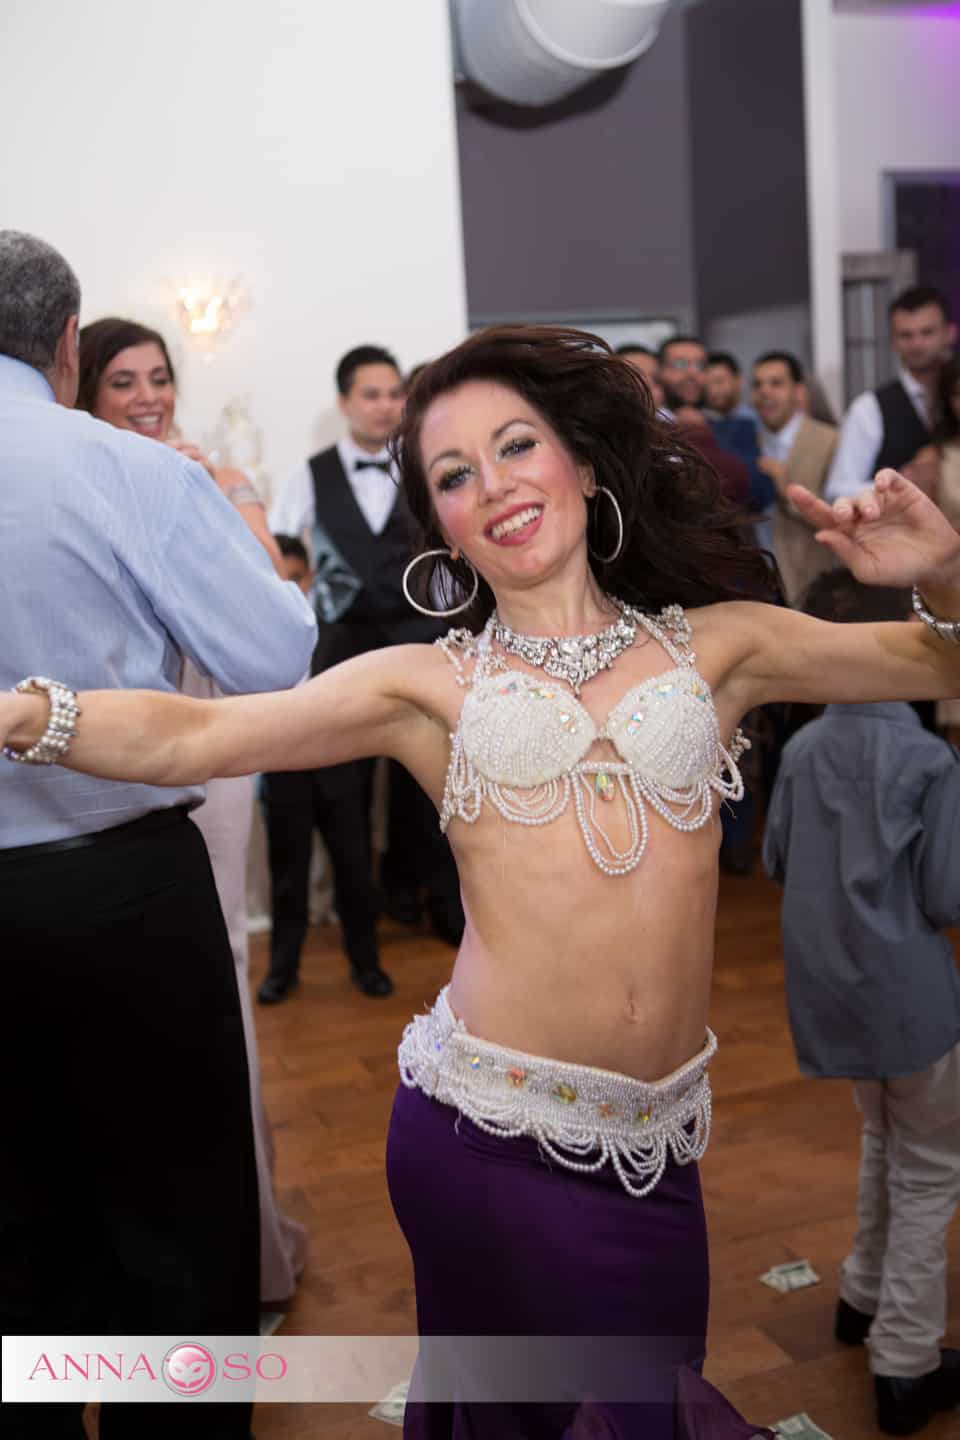 Carrara Nour (belly dancer Orlando) performs at an Egyptian wedding at Crystal Ballroom at Veranda MetroWest. Photography by Anna So